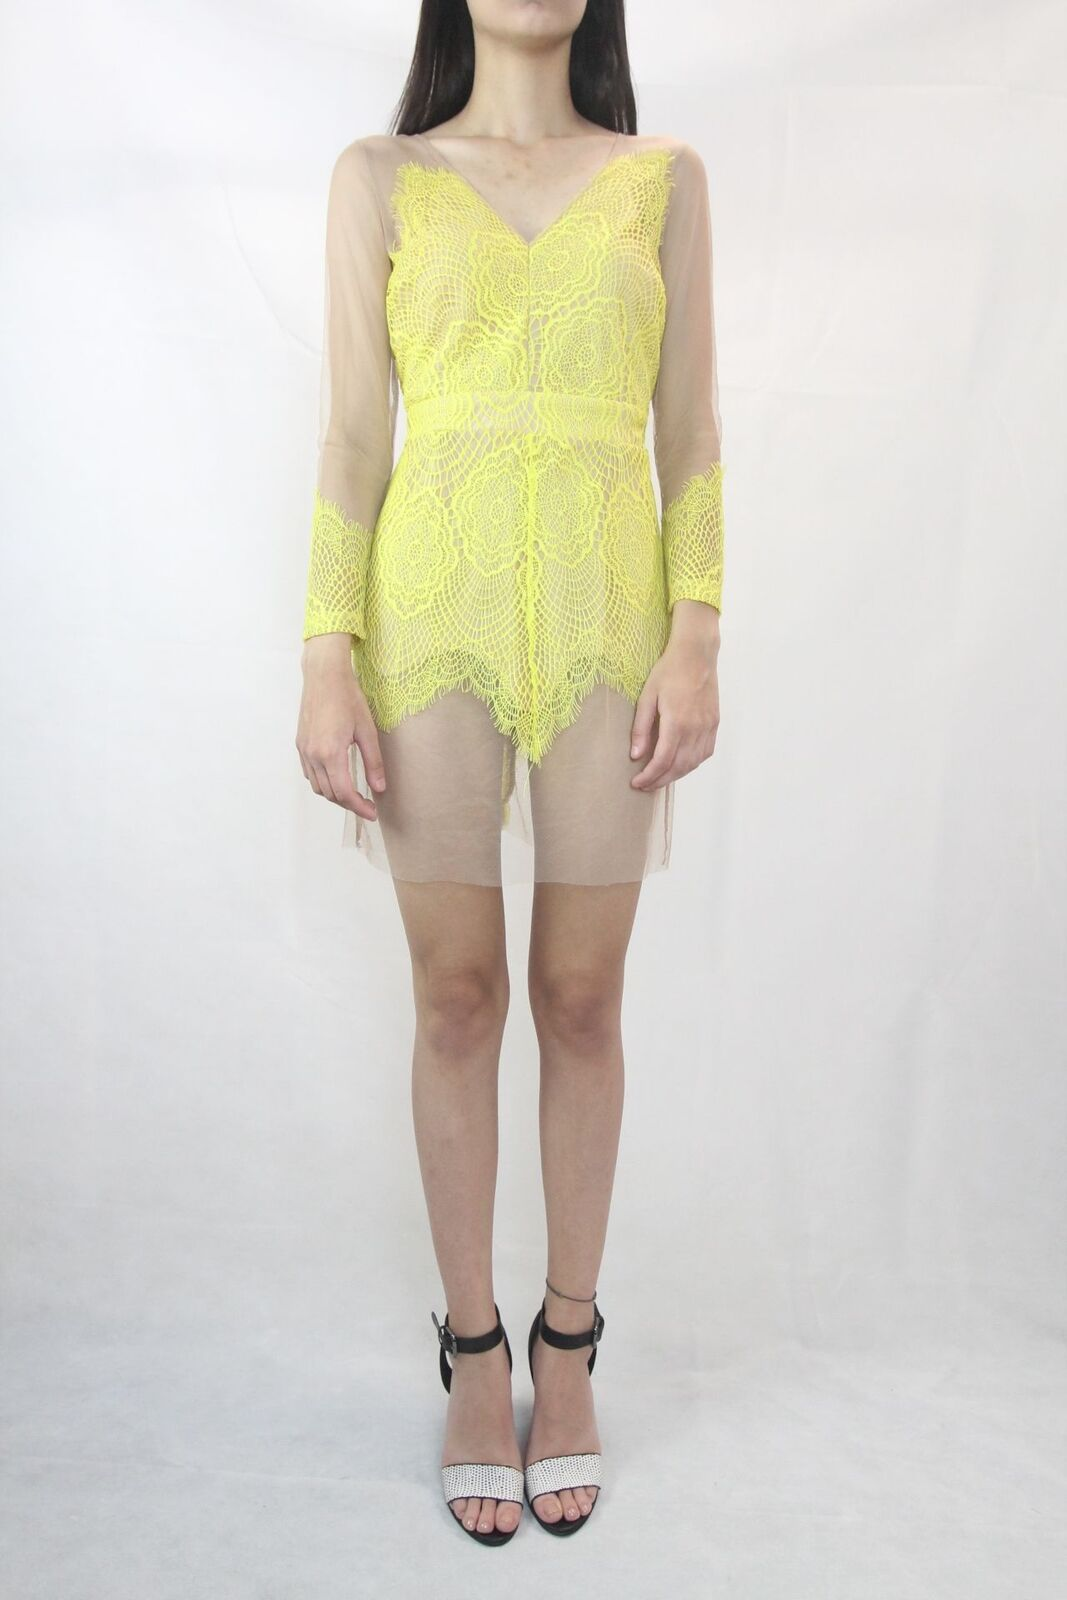 SNIDEL Anthropologie  Nude Yellow Mesh Lace Dress Size S (8) (Japan based label)